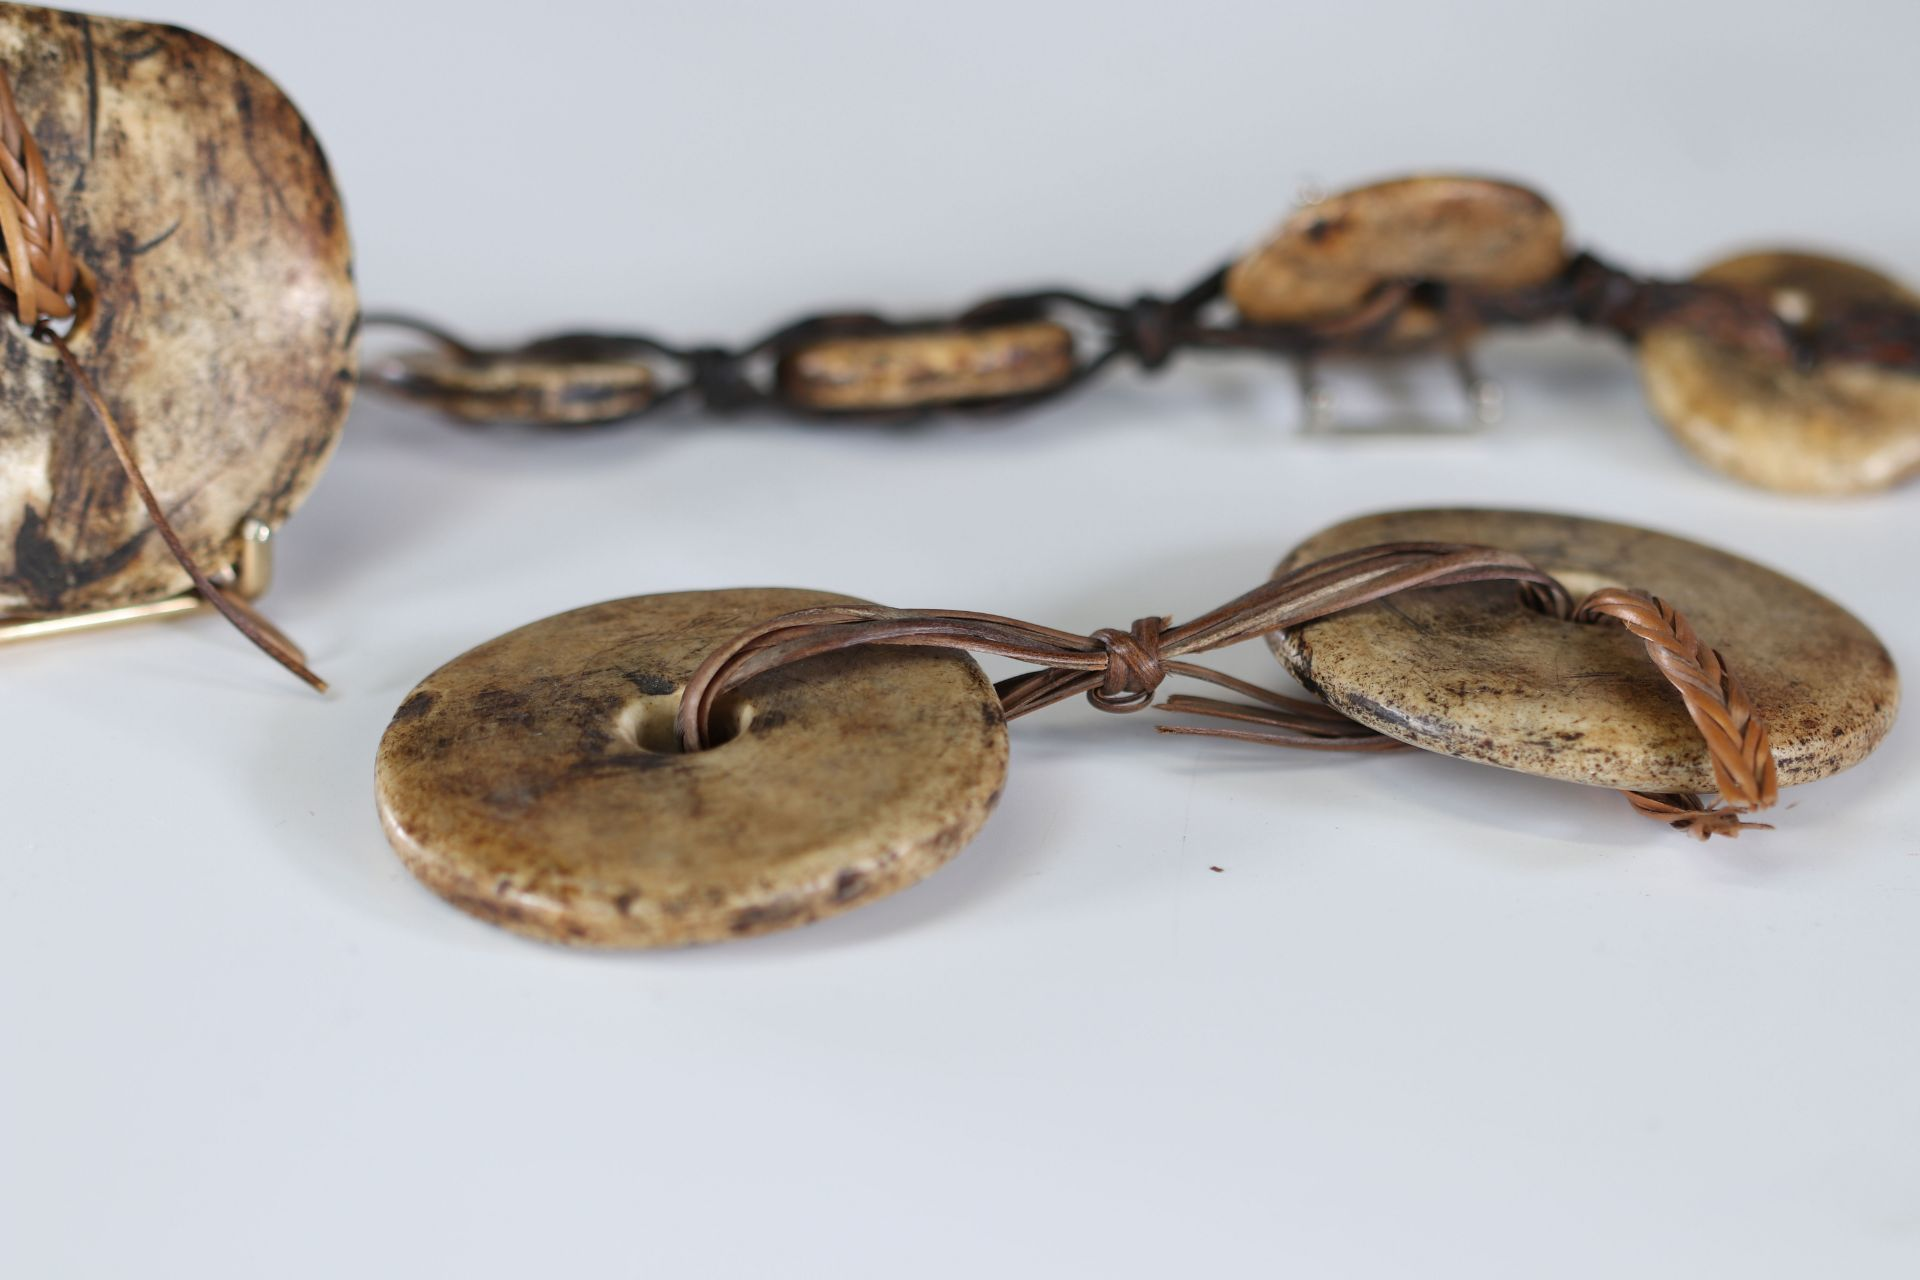 Oceania 19th century stone coin jewelry - Image 3 of 3